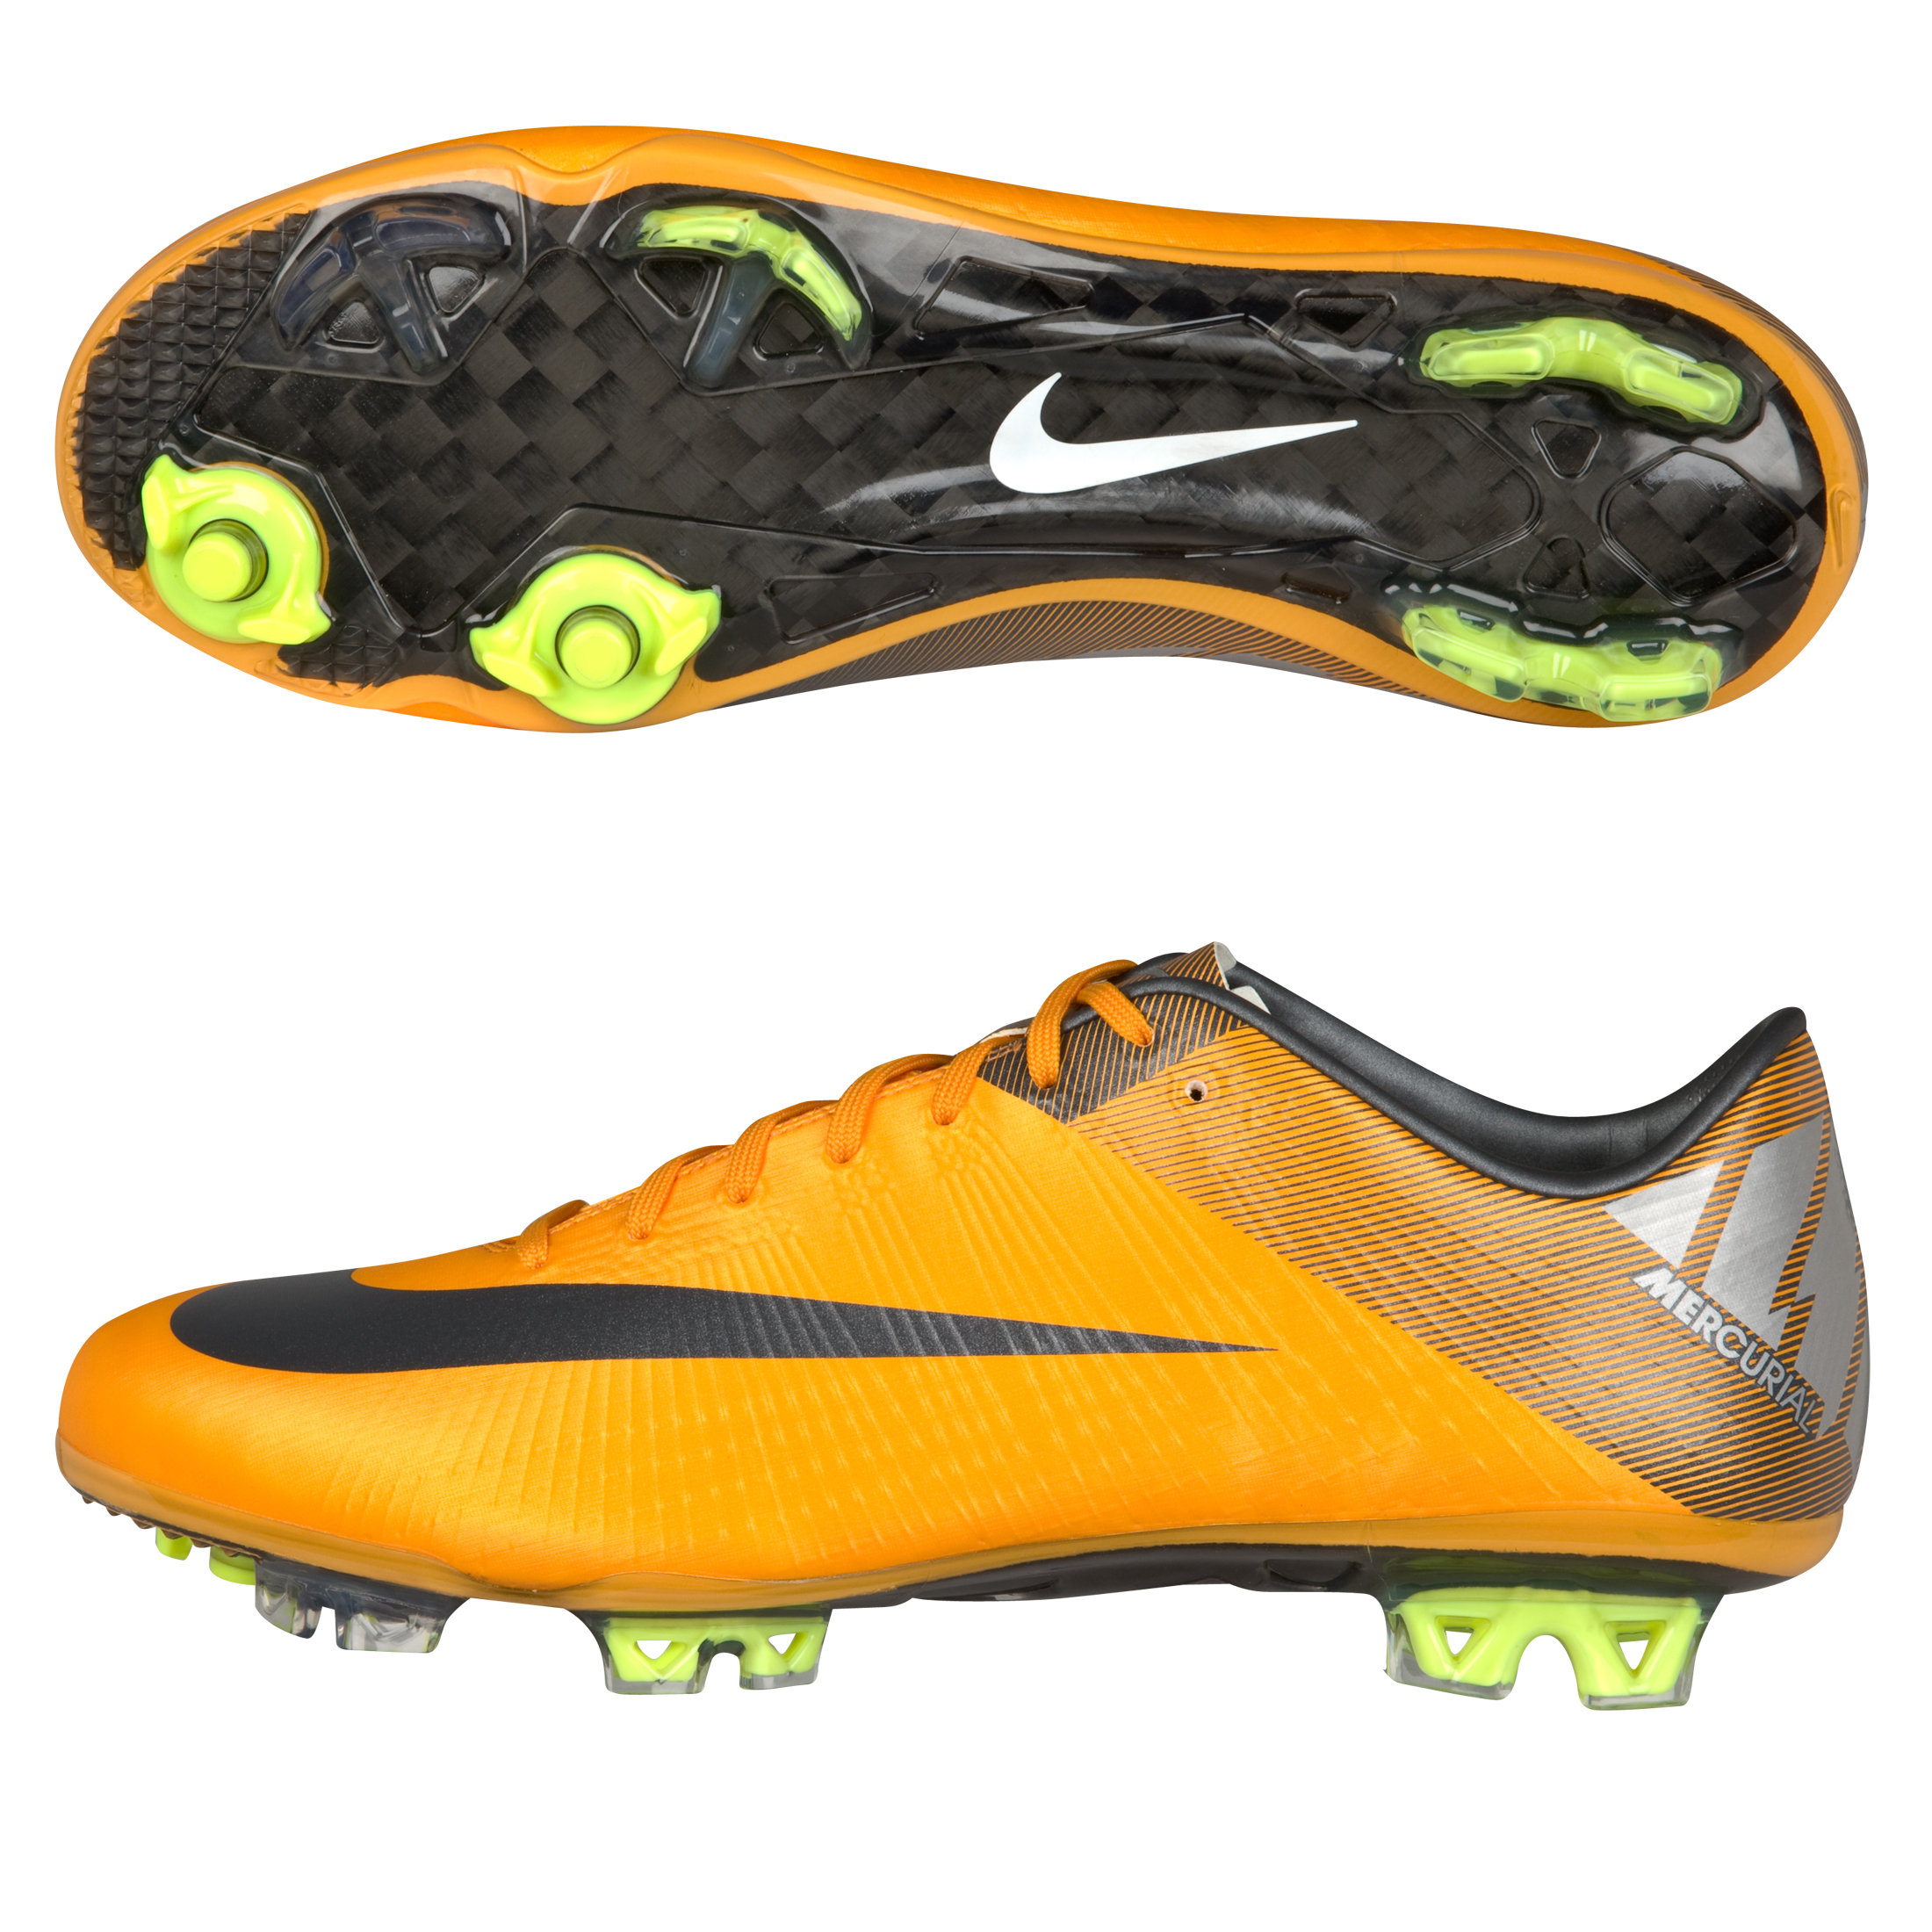 Mercurial Superfly III FG Orange/Metallic/Silver